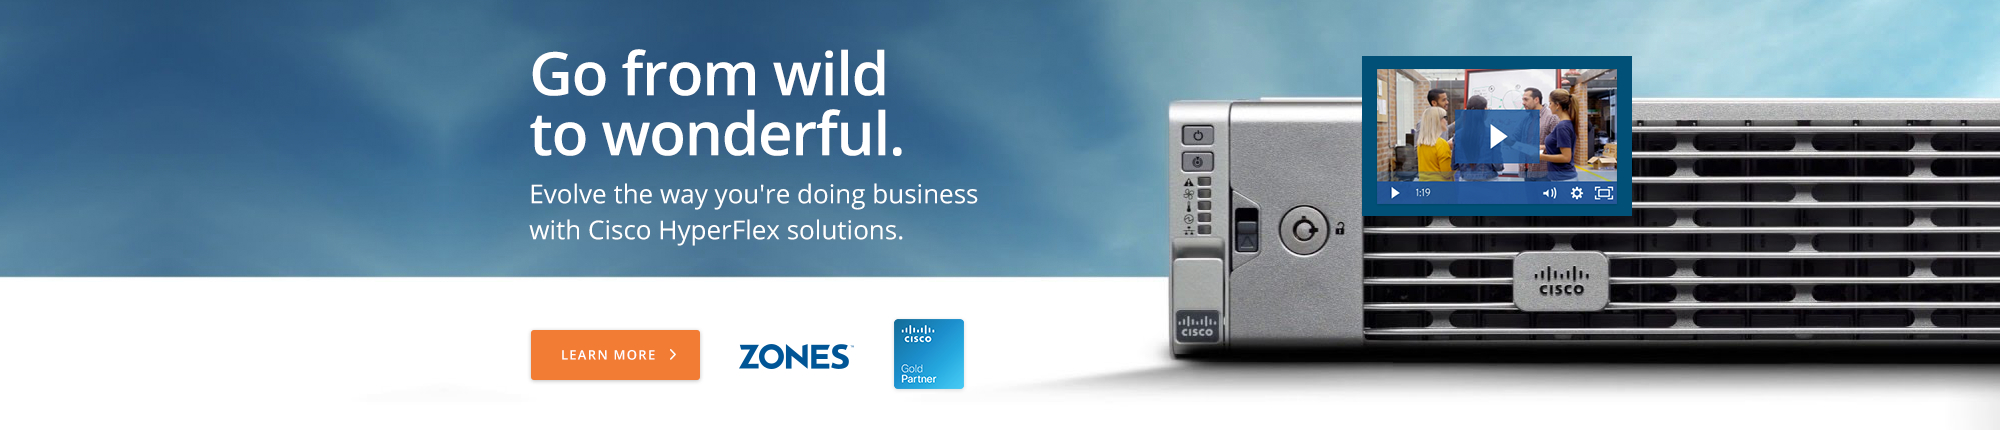 Go from wild to wonderful.  Evolve the way you're doing business with Cisco HyperFlex solutions.